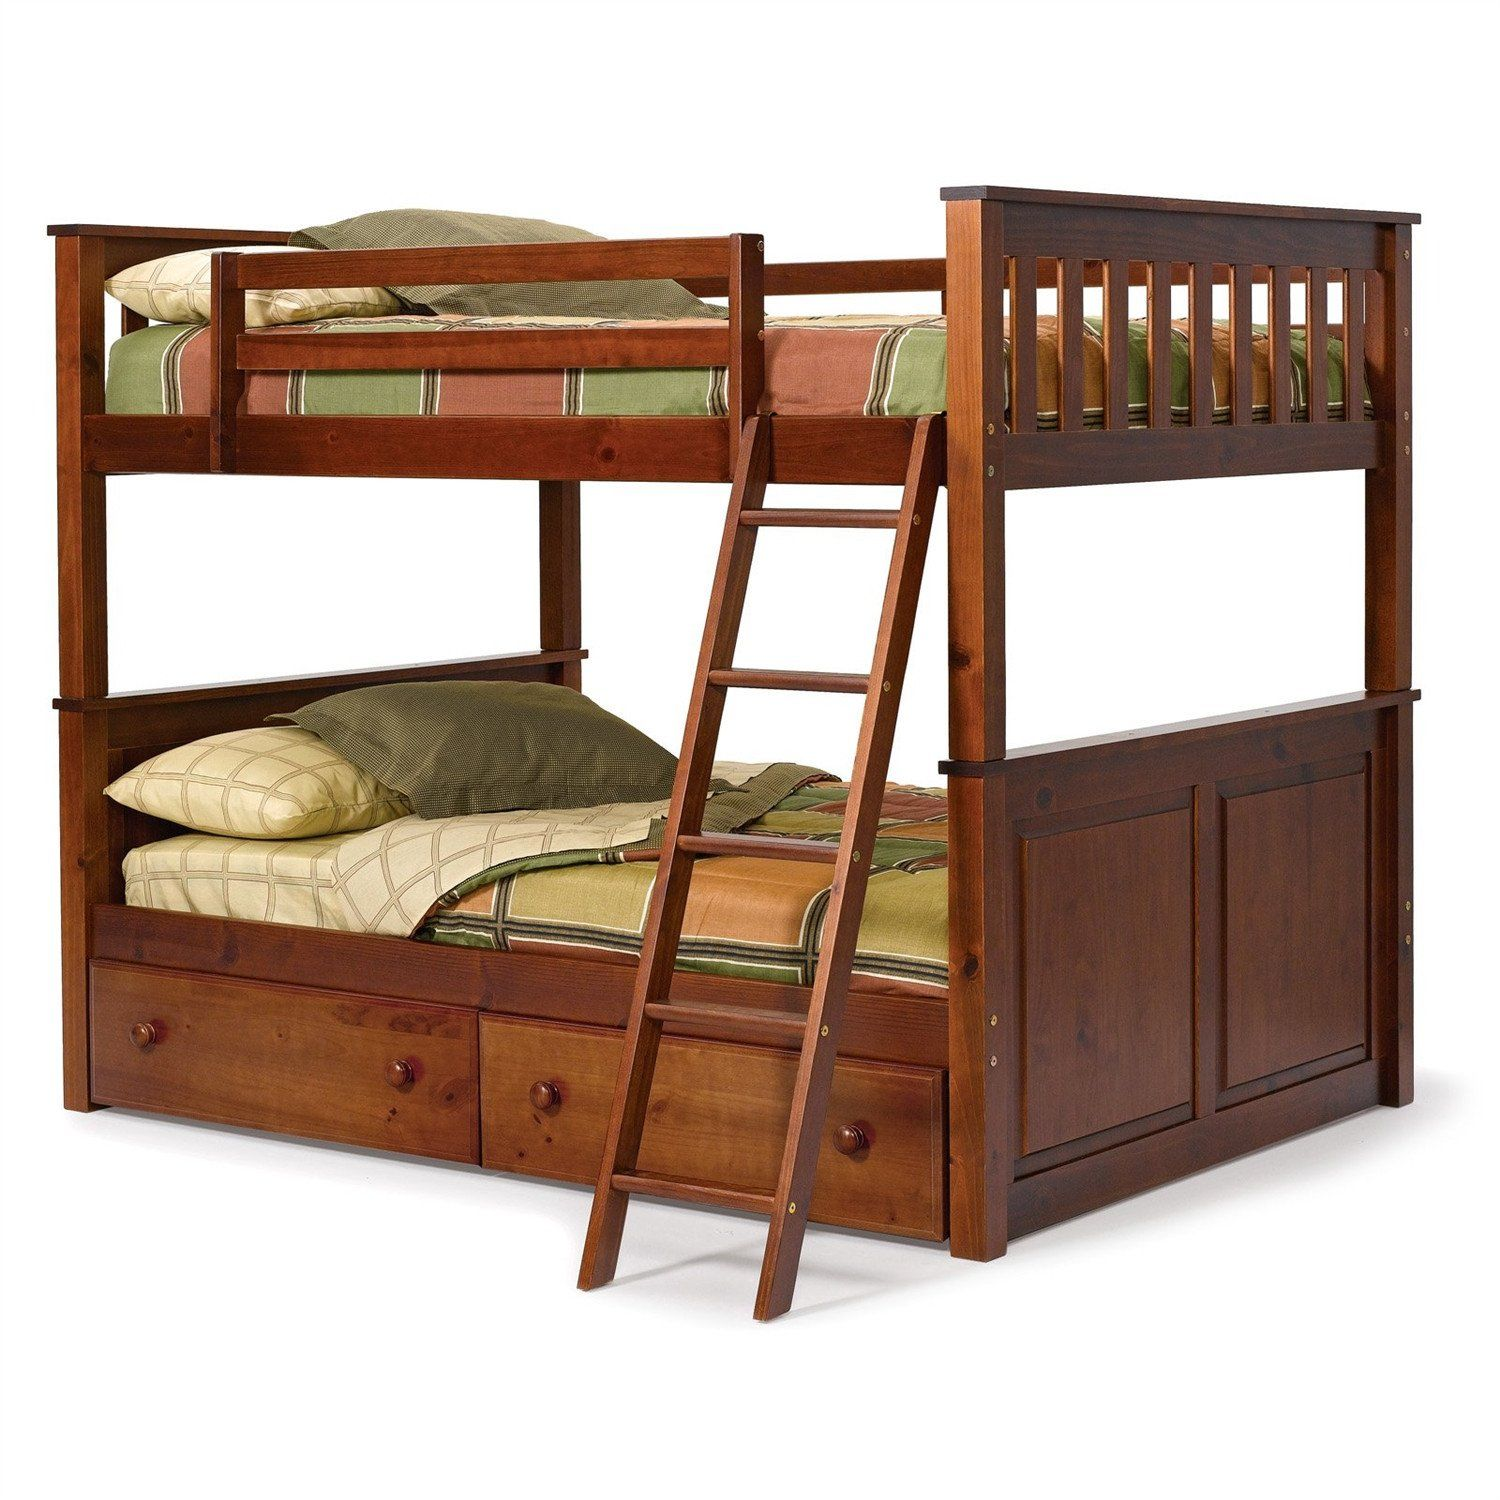 Full Over Full Size Bunk Bed In Solid Hardwood With Chocolate